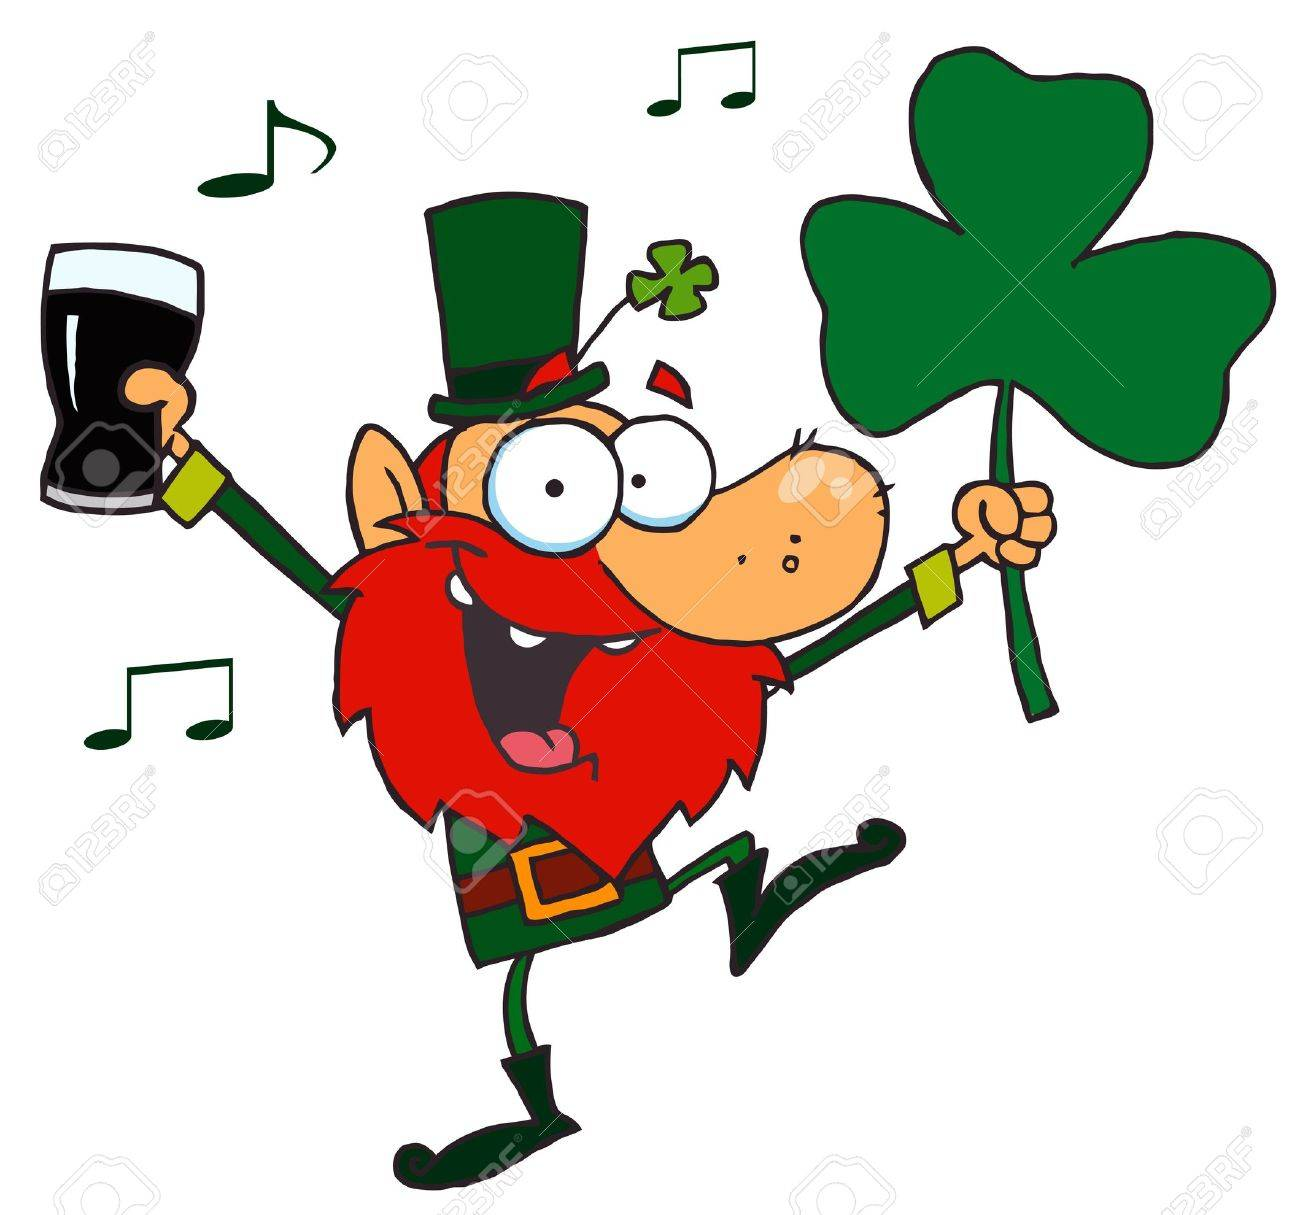 lucky leprechaun dancing with a glass of beer and shamrock royalty